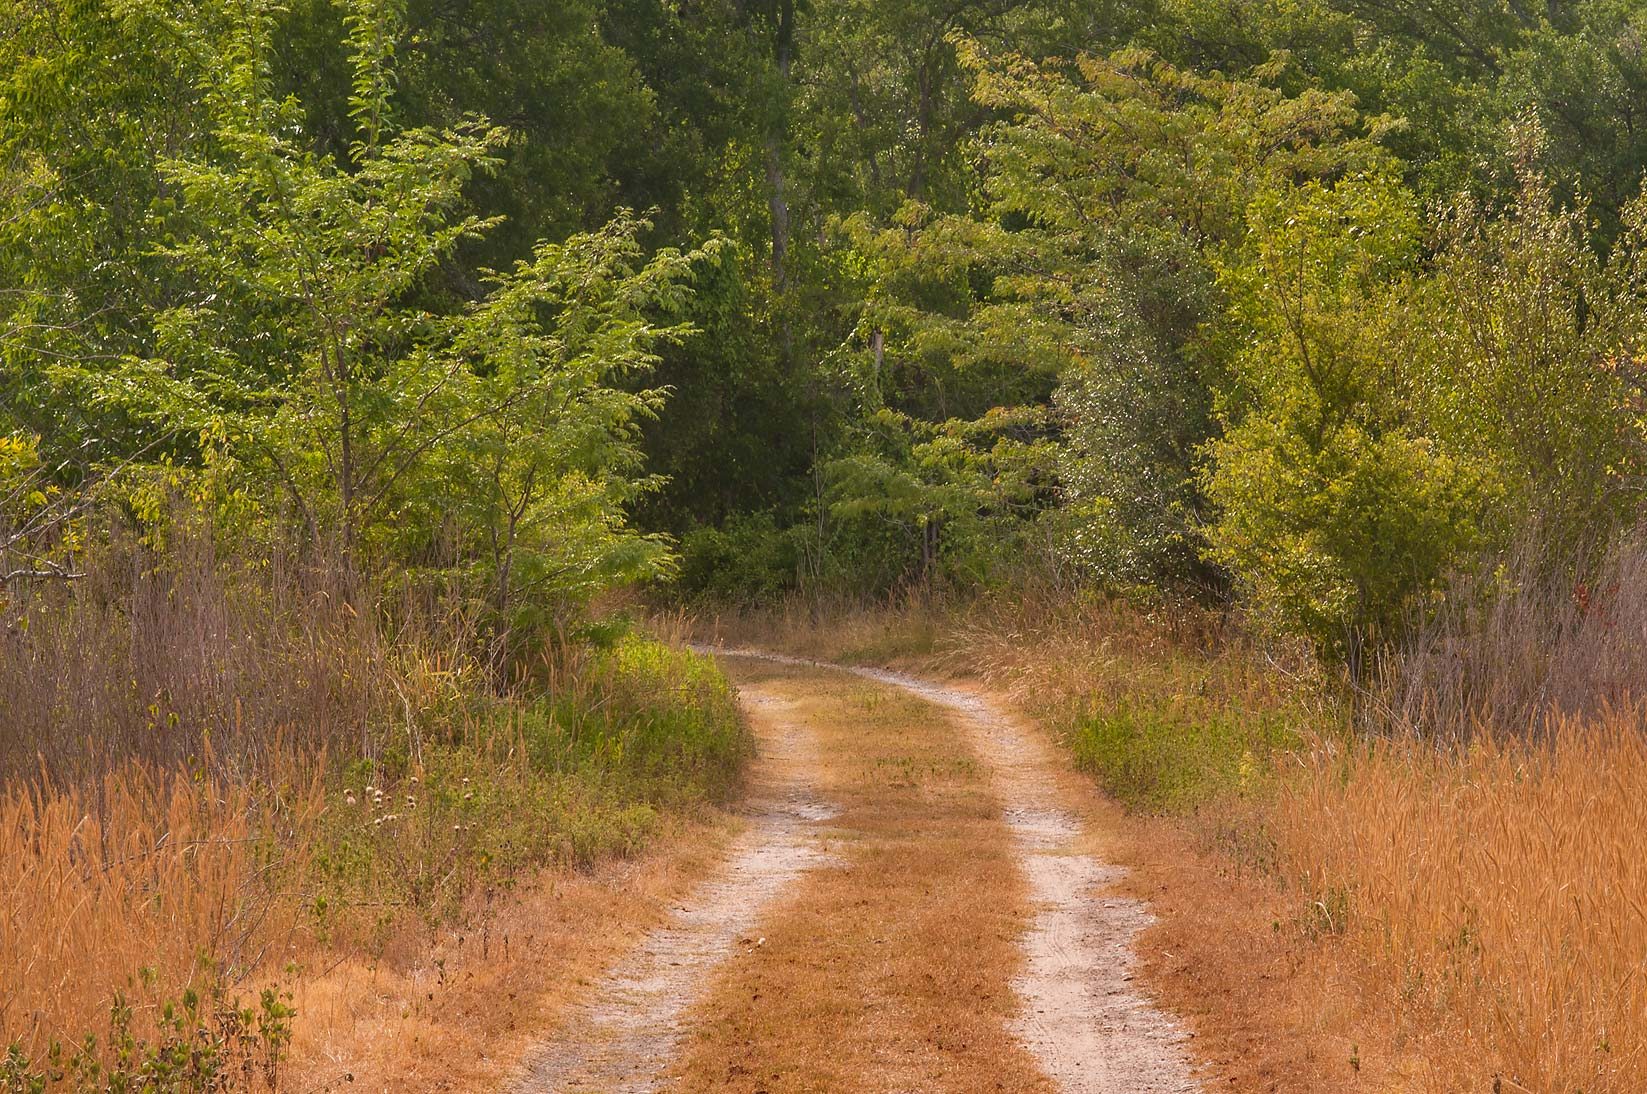 A trail in Birch Creek Unit of Somerville Lake State Park